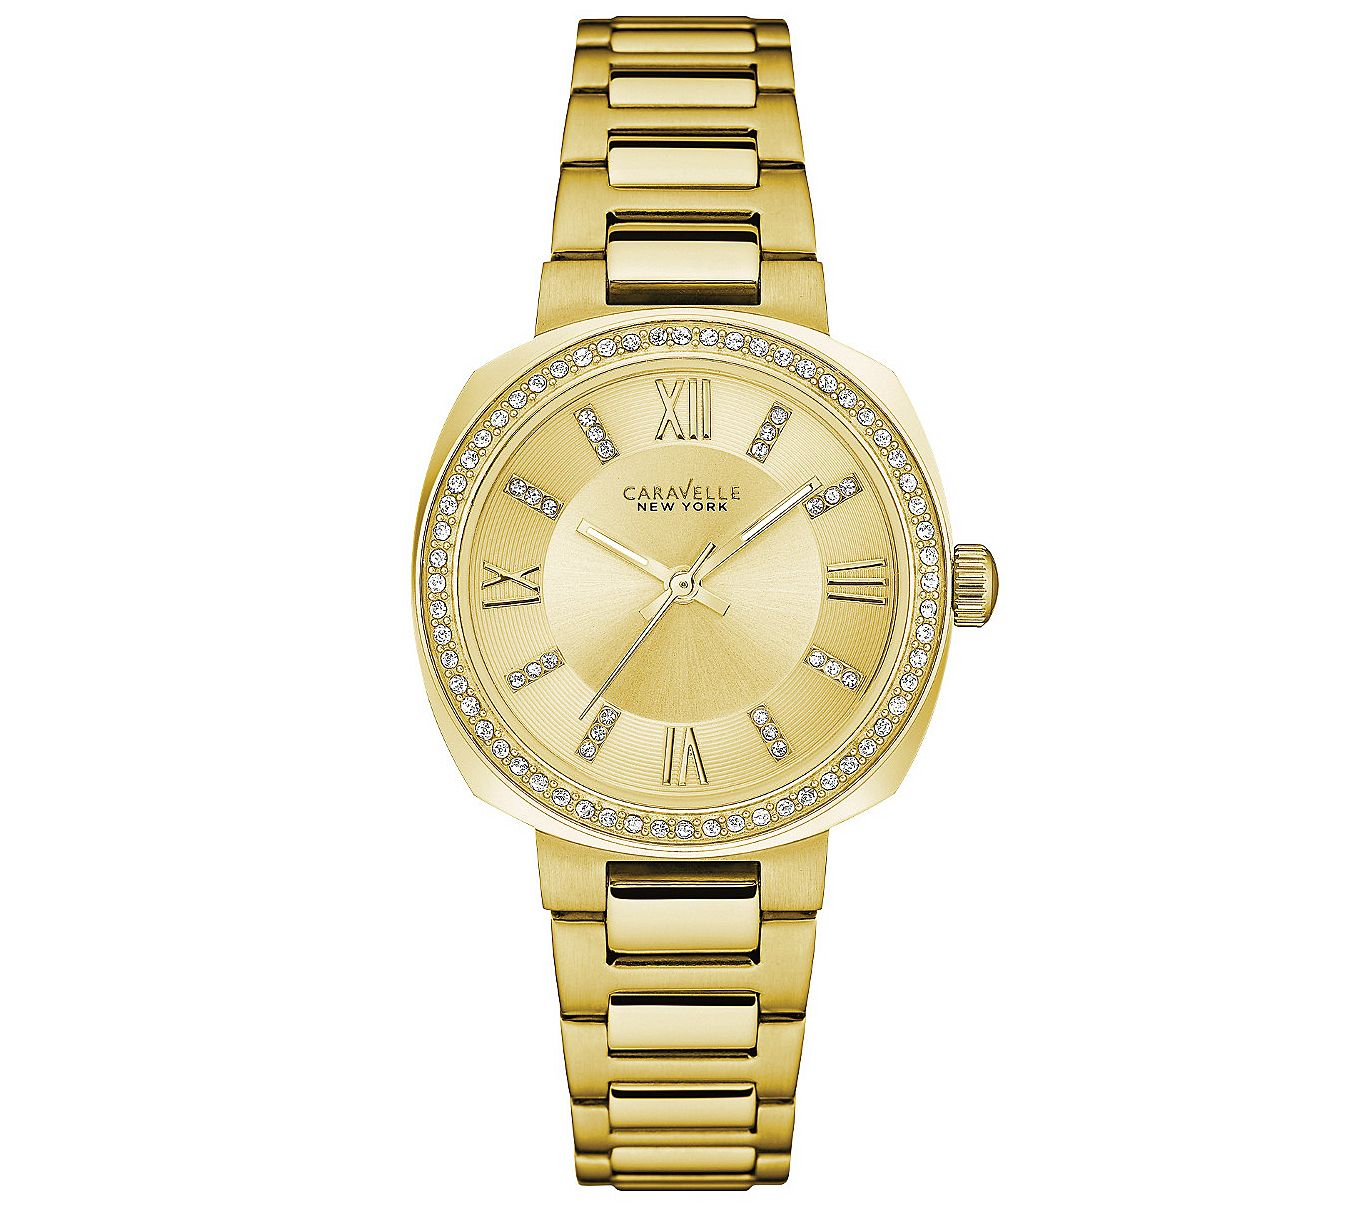 Qvc Bettwäsche Coravelle Caravelle New York Women 39s Goldtone Watch Withchampagne